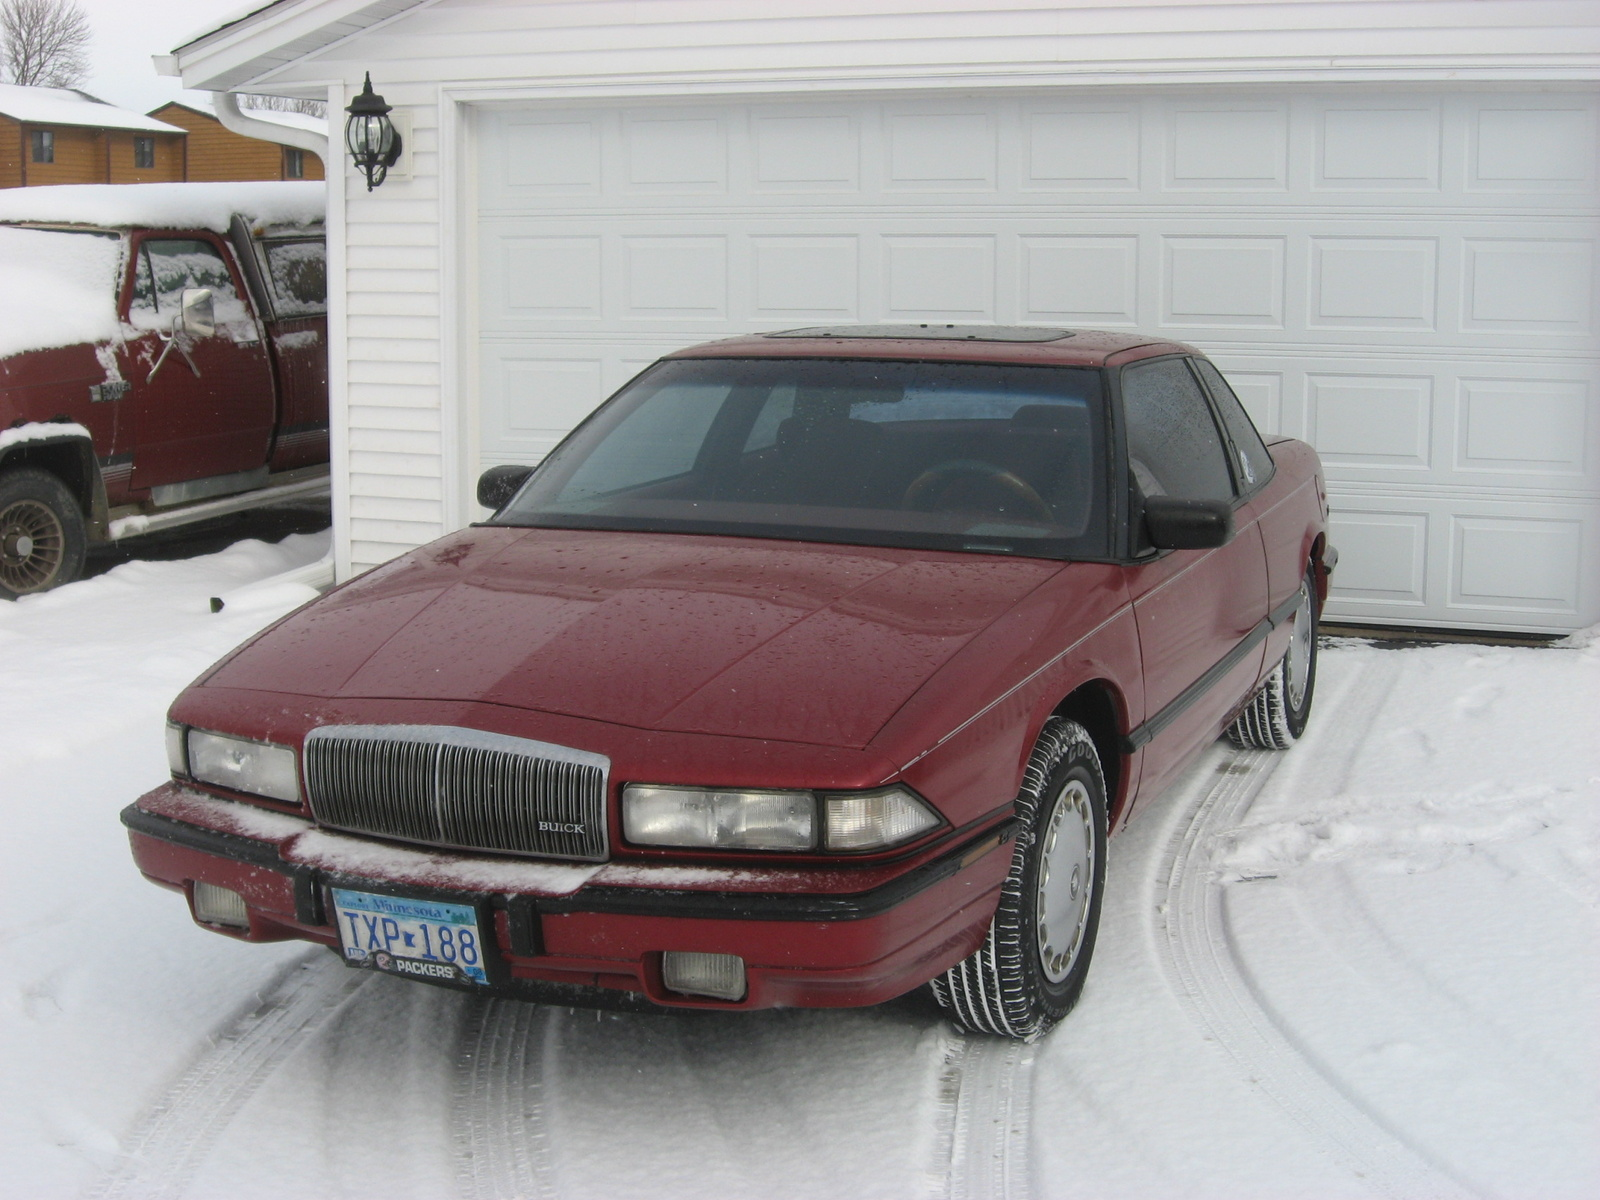 Picture of 1994 Buick Regal 2 Dr Custom Coupe